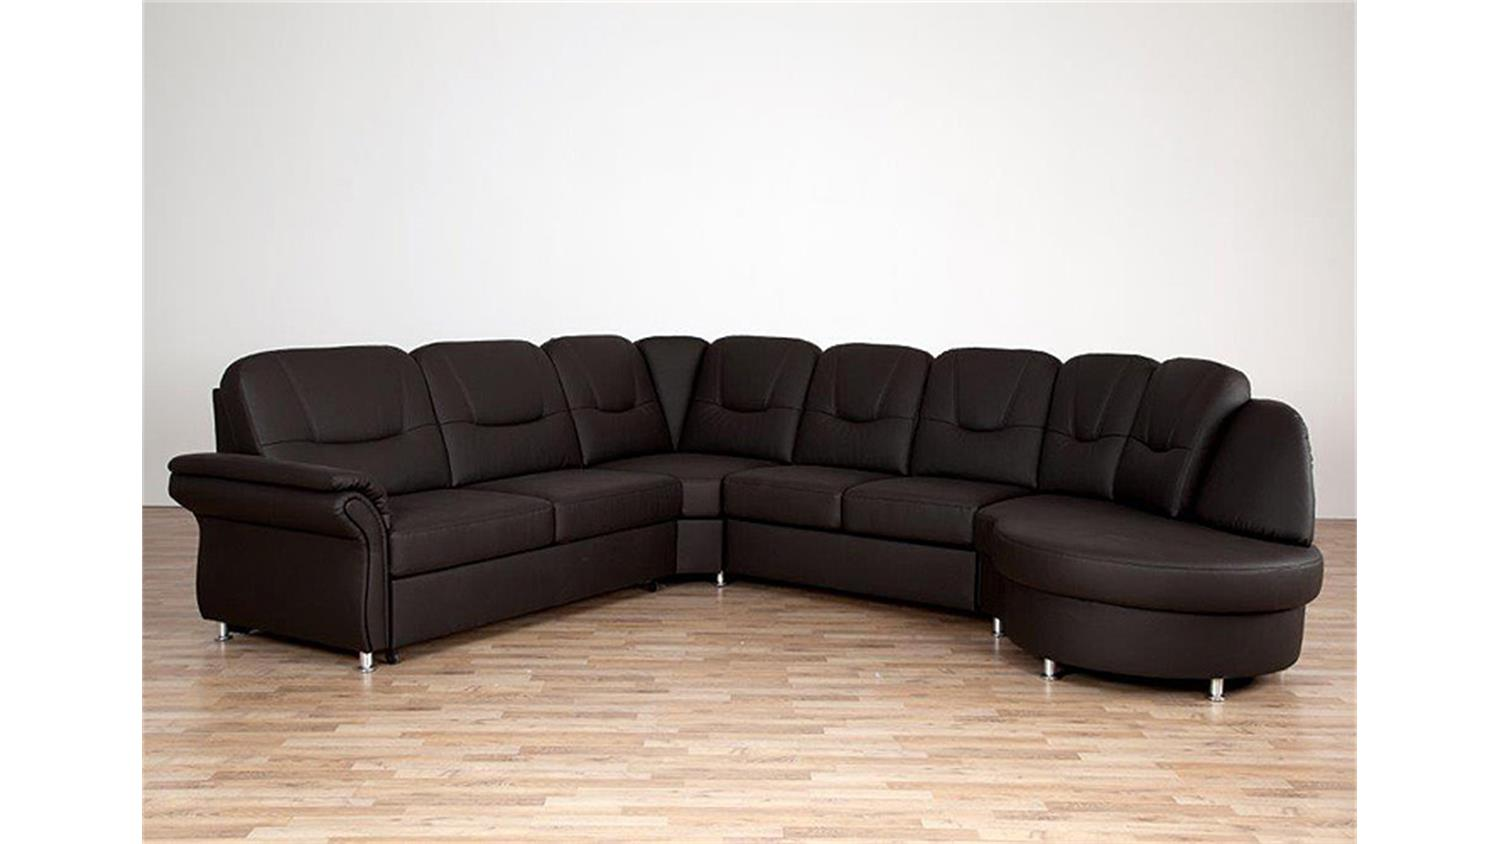 wohnlandschaft olaf ecksofa braun bettfunktion bettkasten. Black Bedroom Furniture Sets. Home Design Ideas